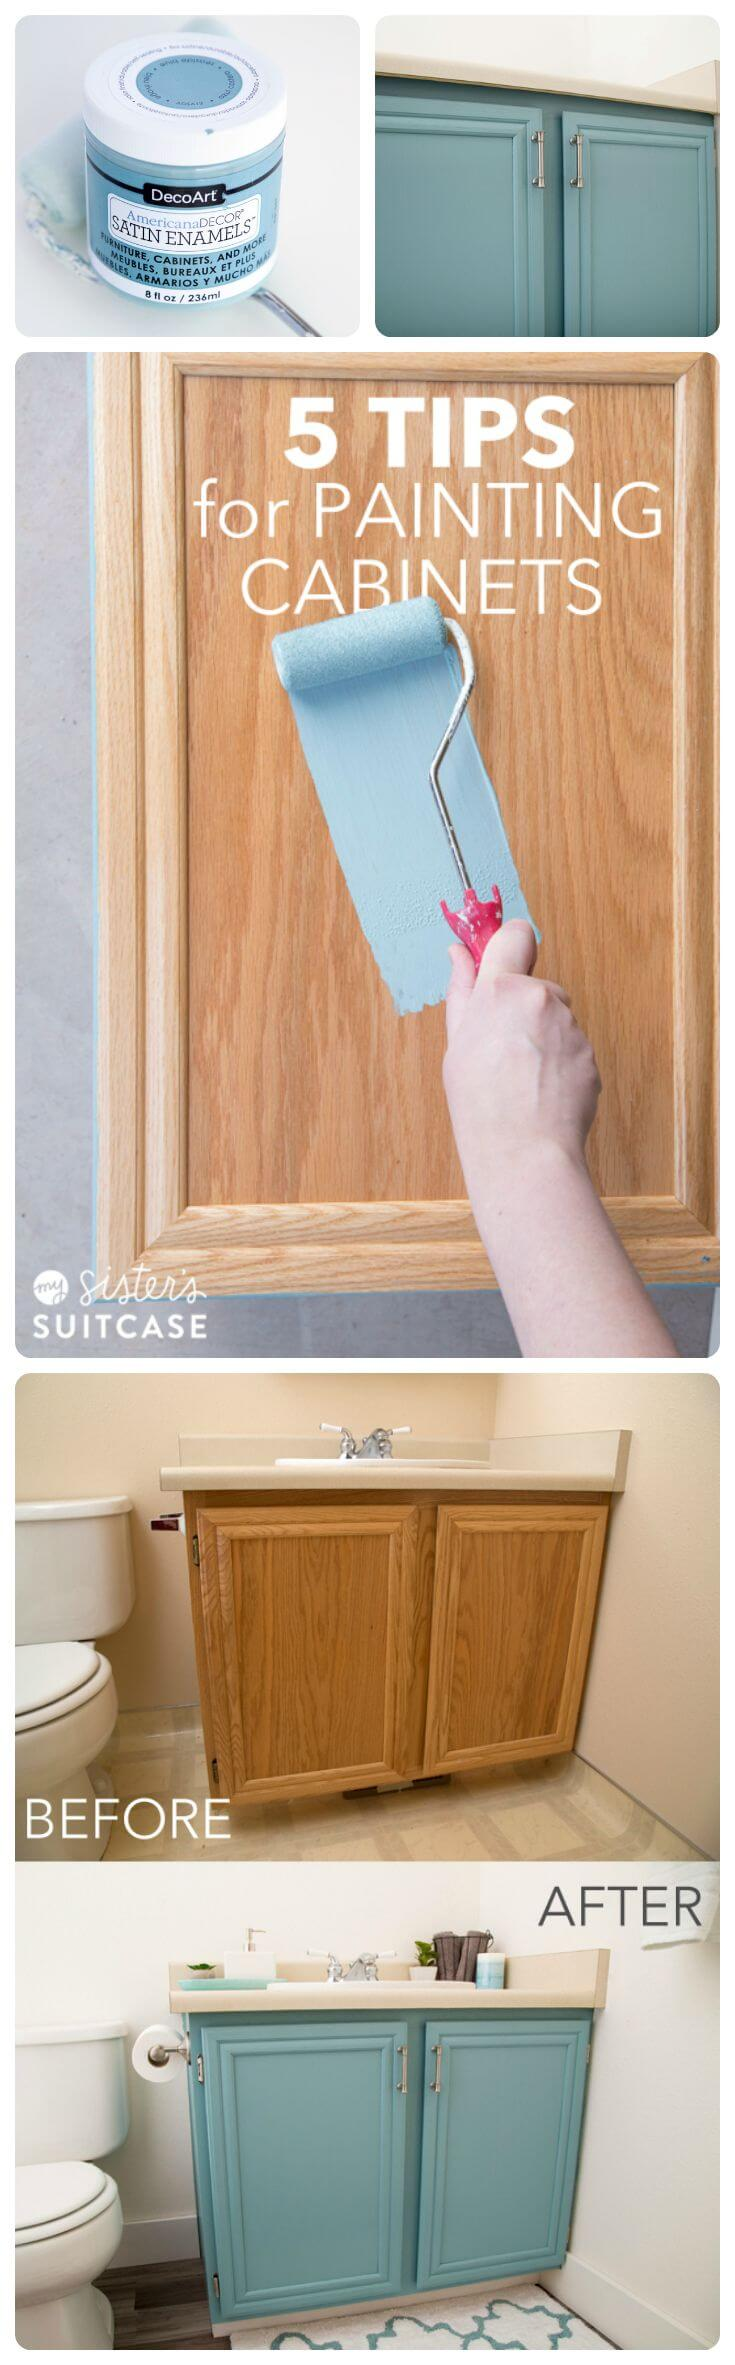 banos diy faciles 6